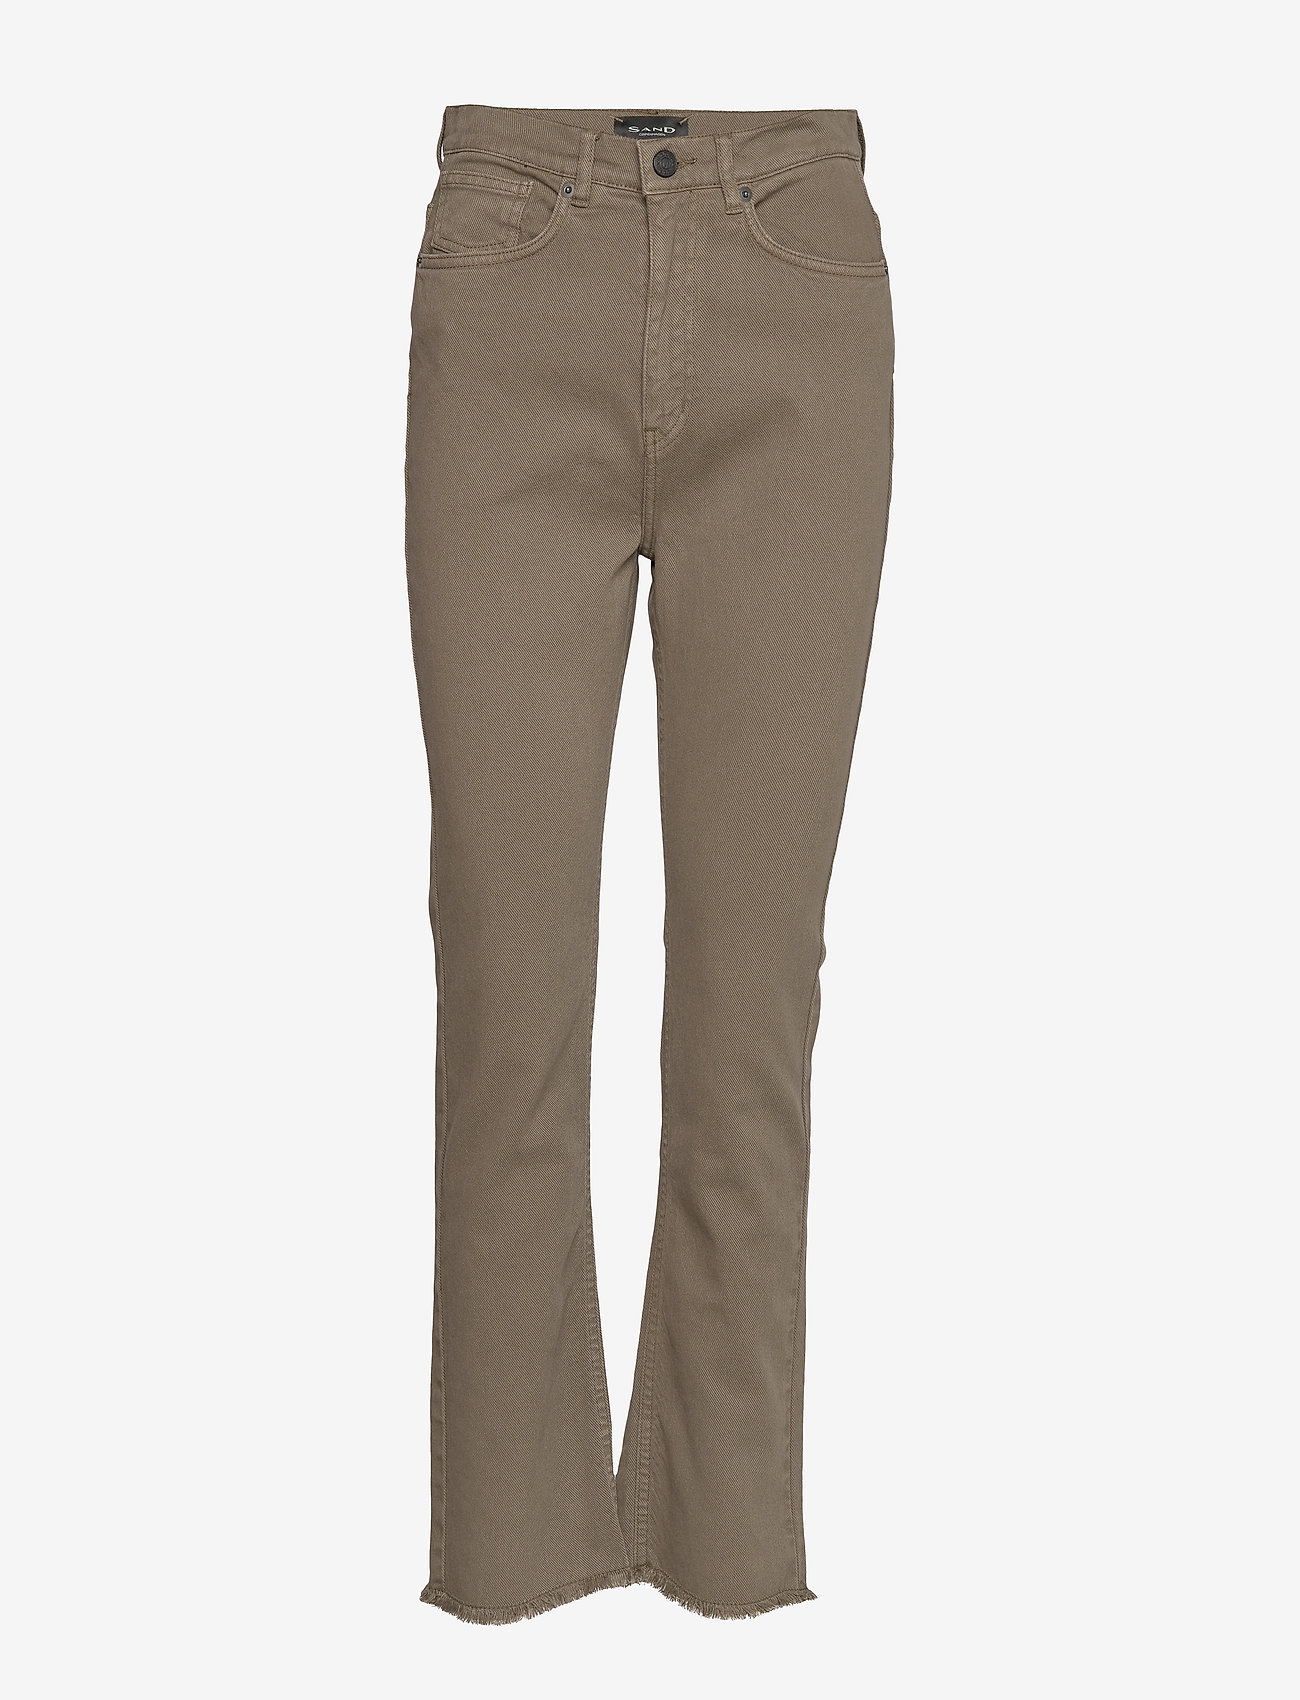 SAND - 0639 - Kathy Cropped - boot cut jeans - olive/khaki - 0